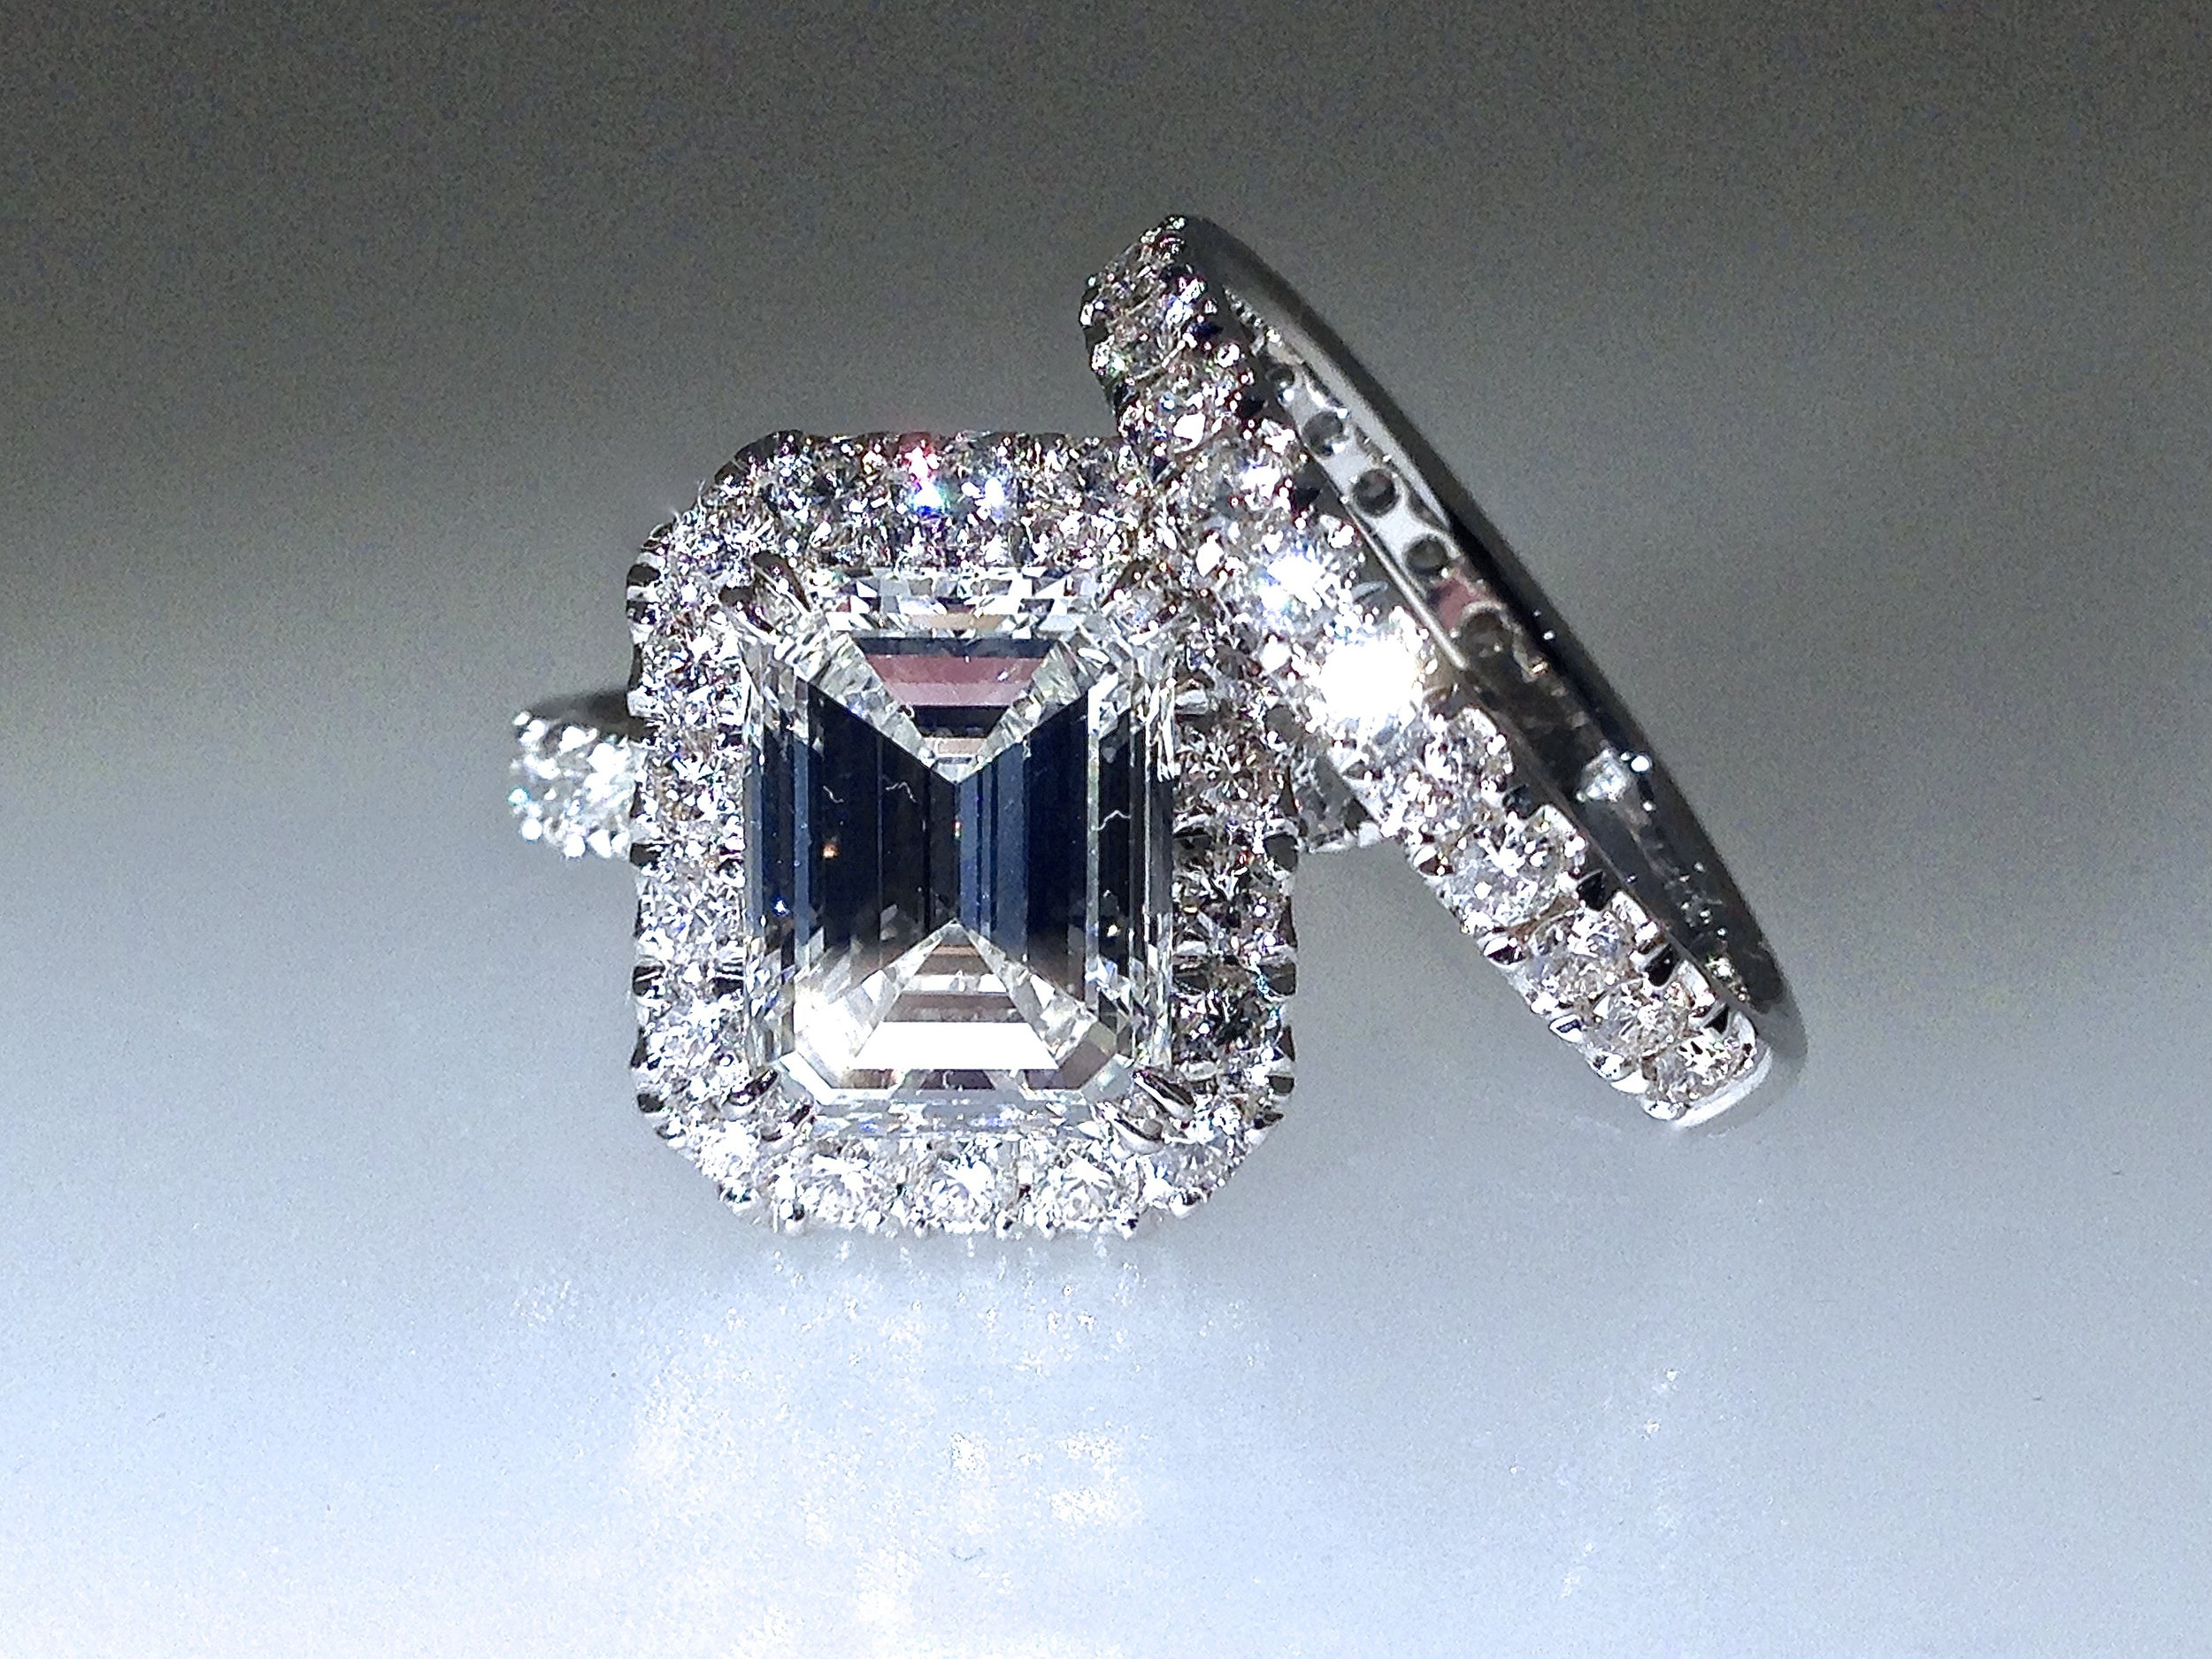 Copy of New cluster mount for customers emerald cut diamond with matching diamond band. Made in Chichester, England.